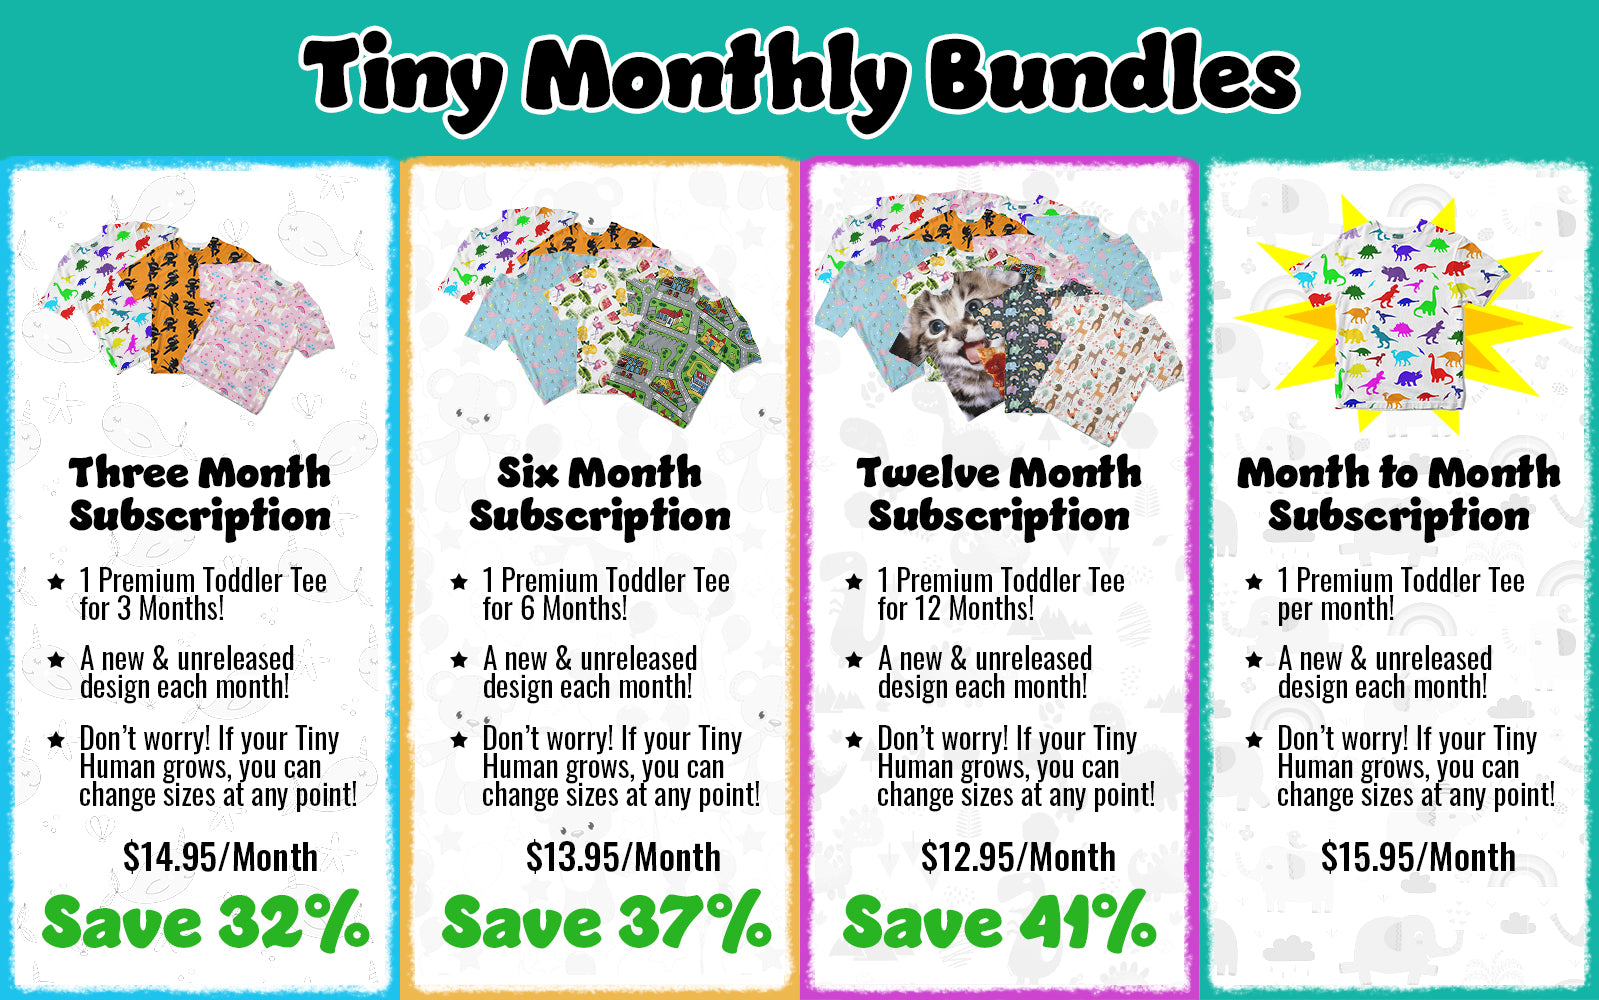 Monthly Bundles - Monthly Subscription Services for Tinyhumanclothing.com